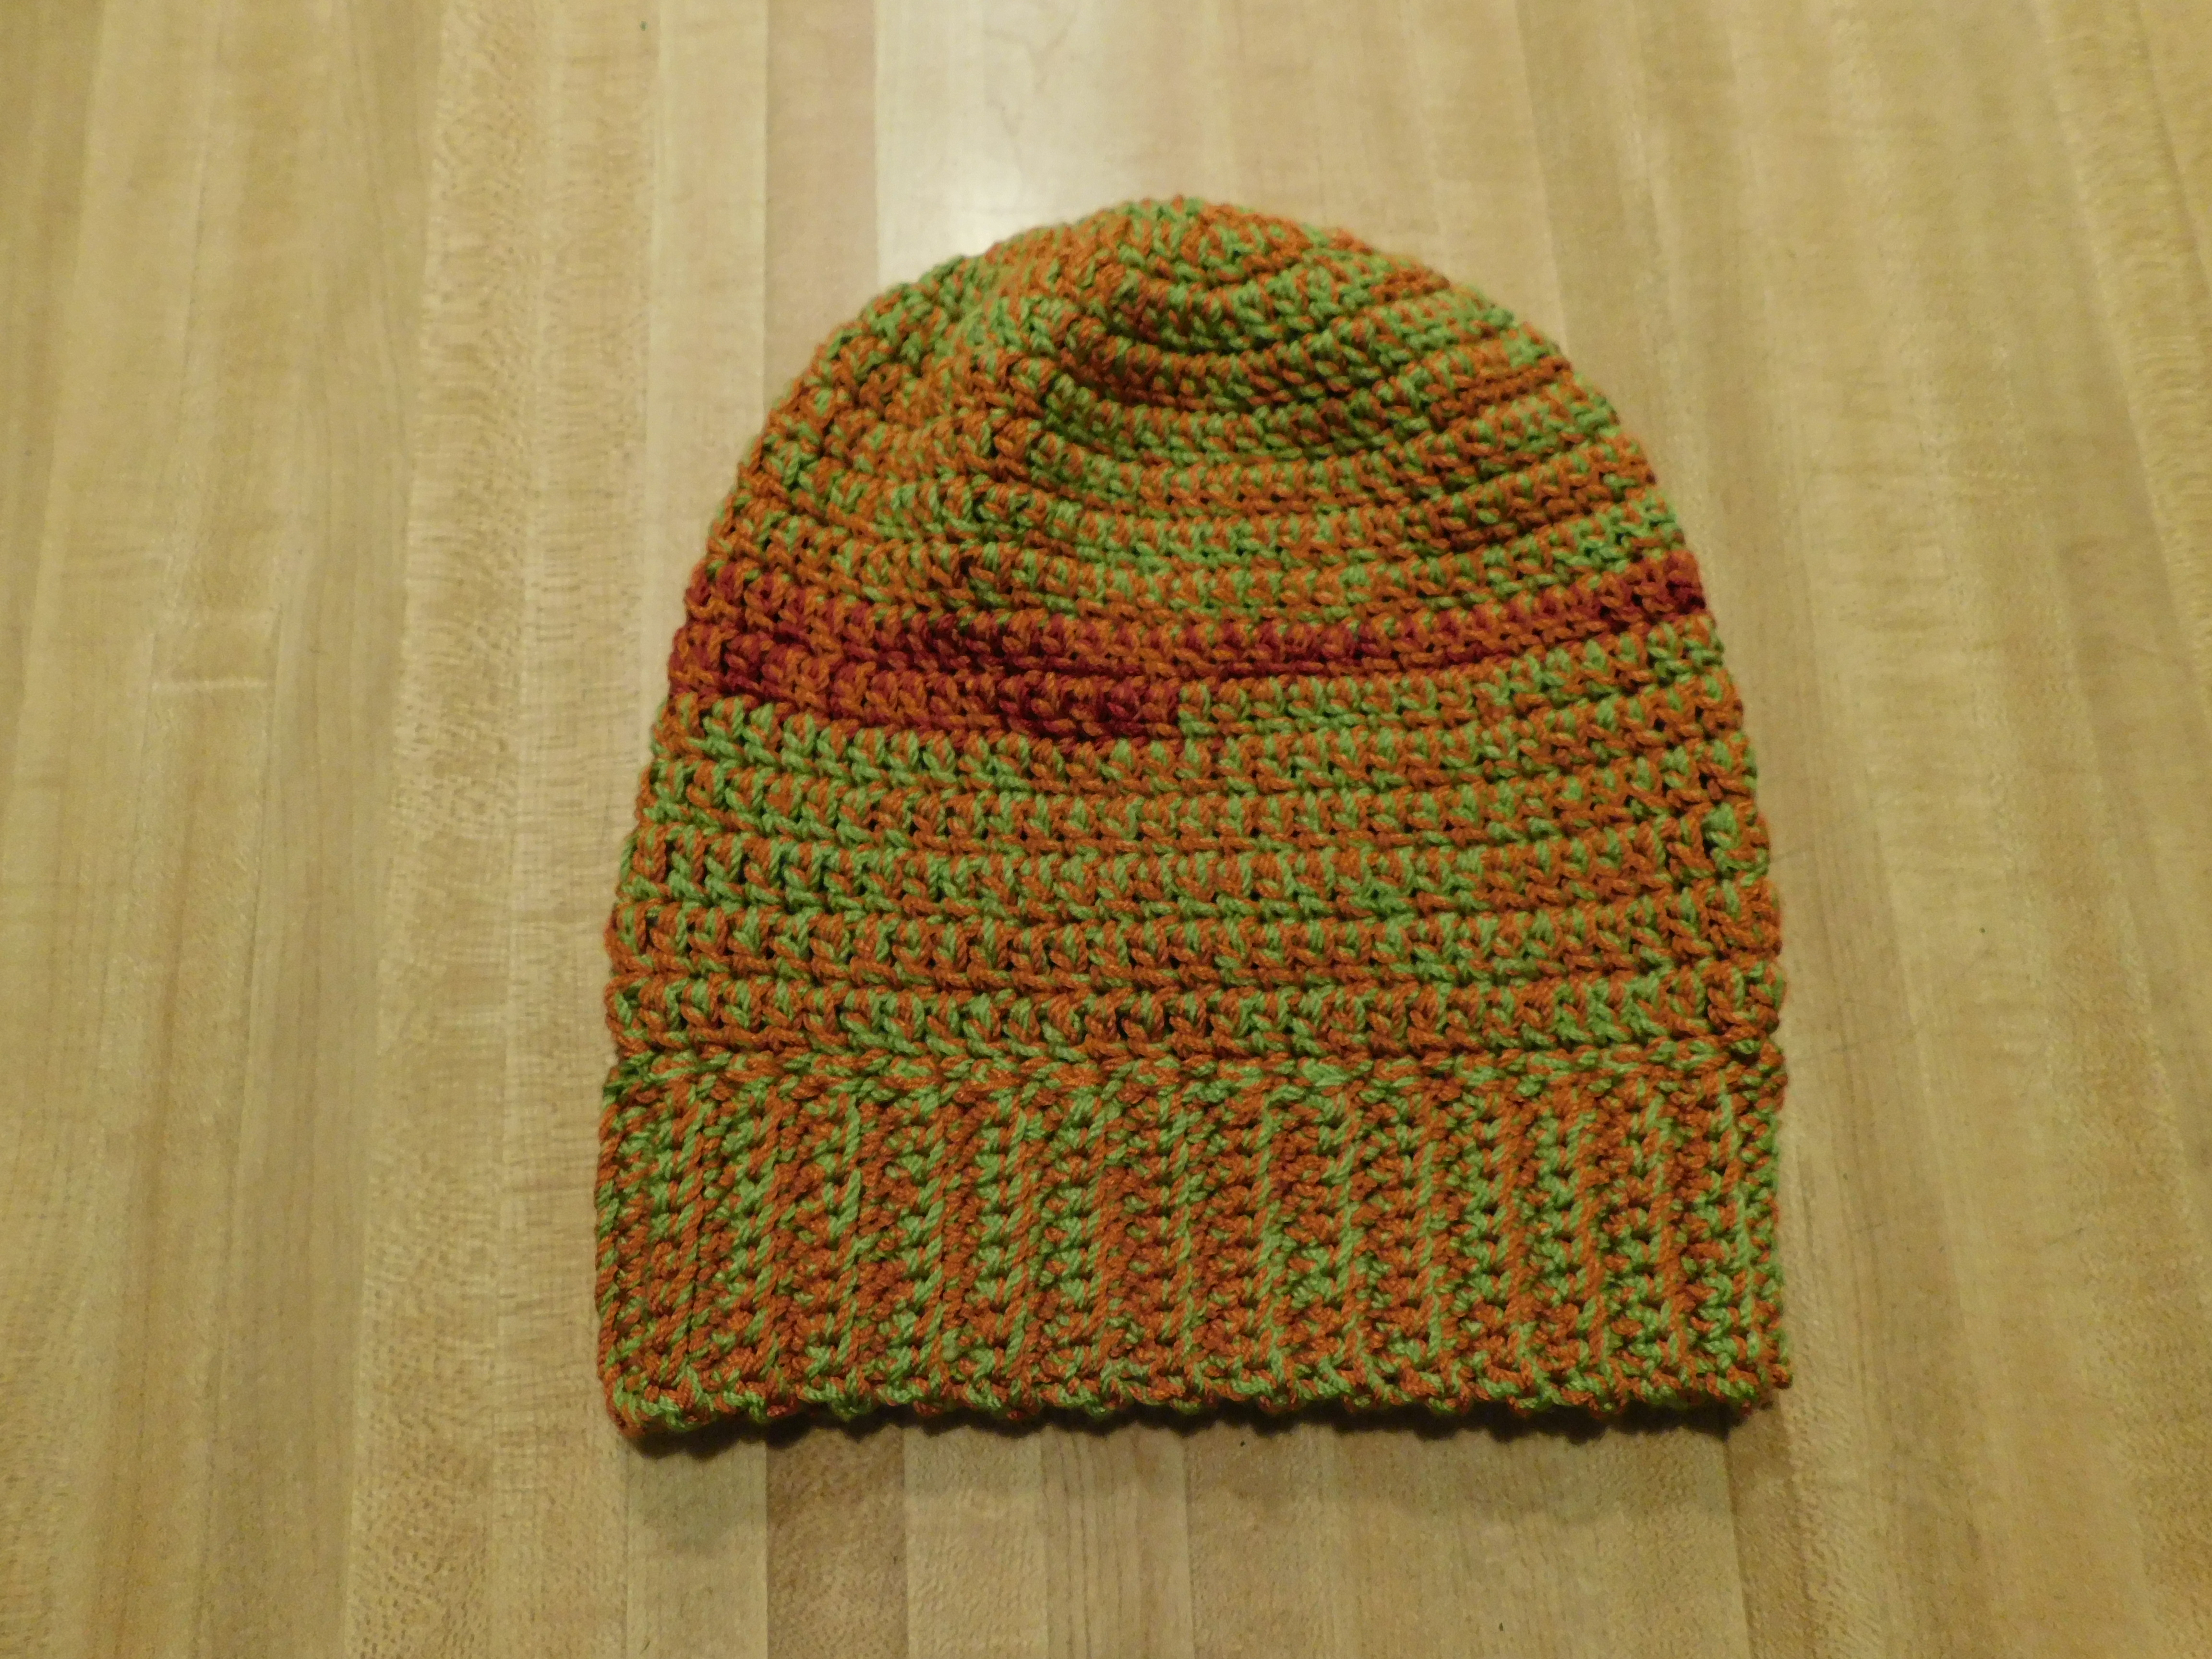 Crocheted Hat #32